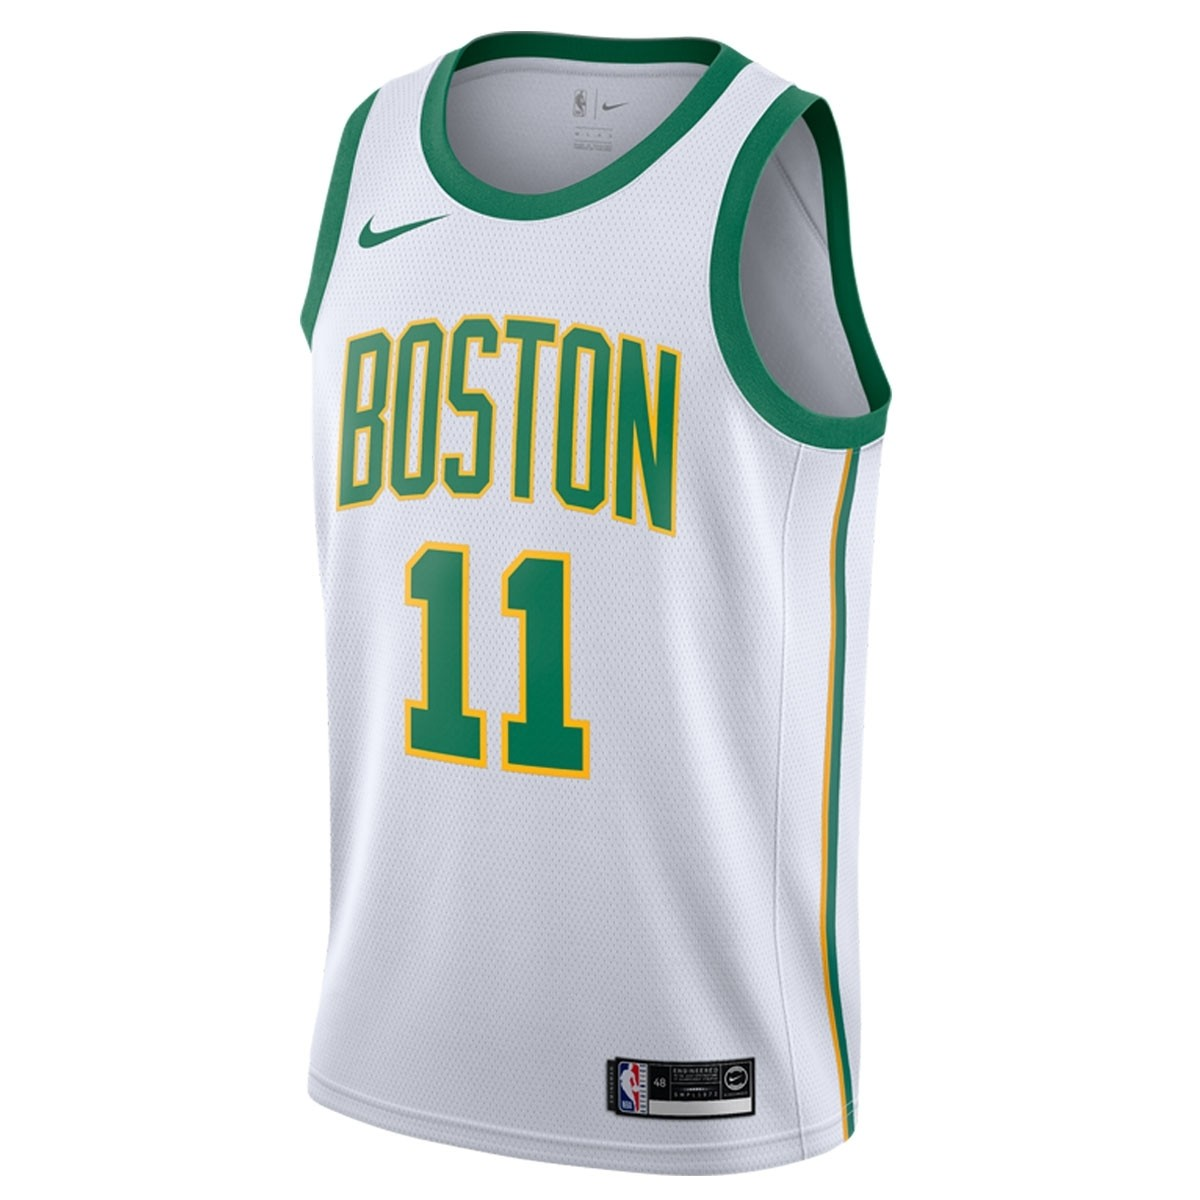 Nike Junior NBA Celtics Swingman Jersey Irving 'City Edition'